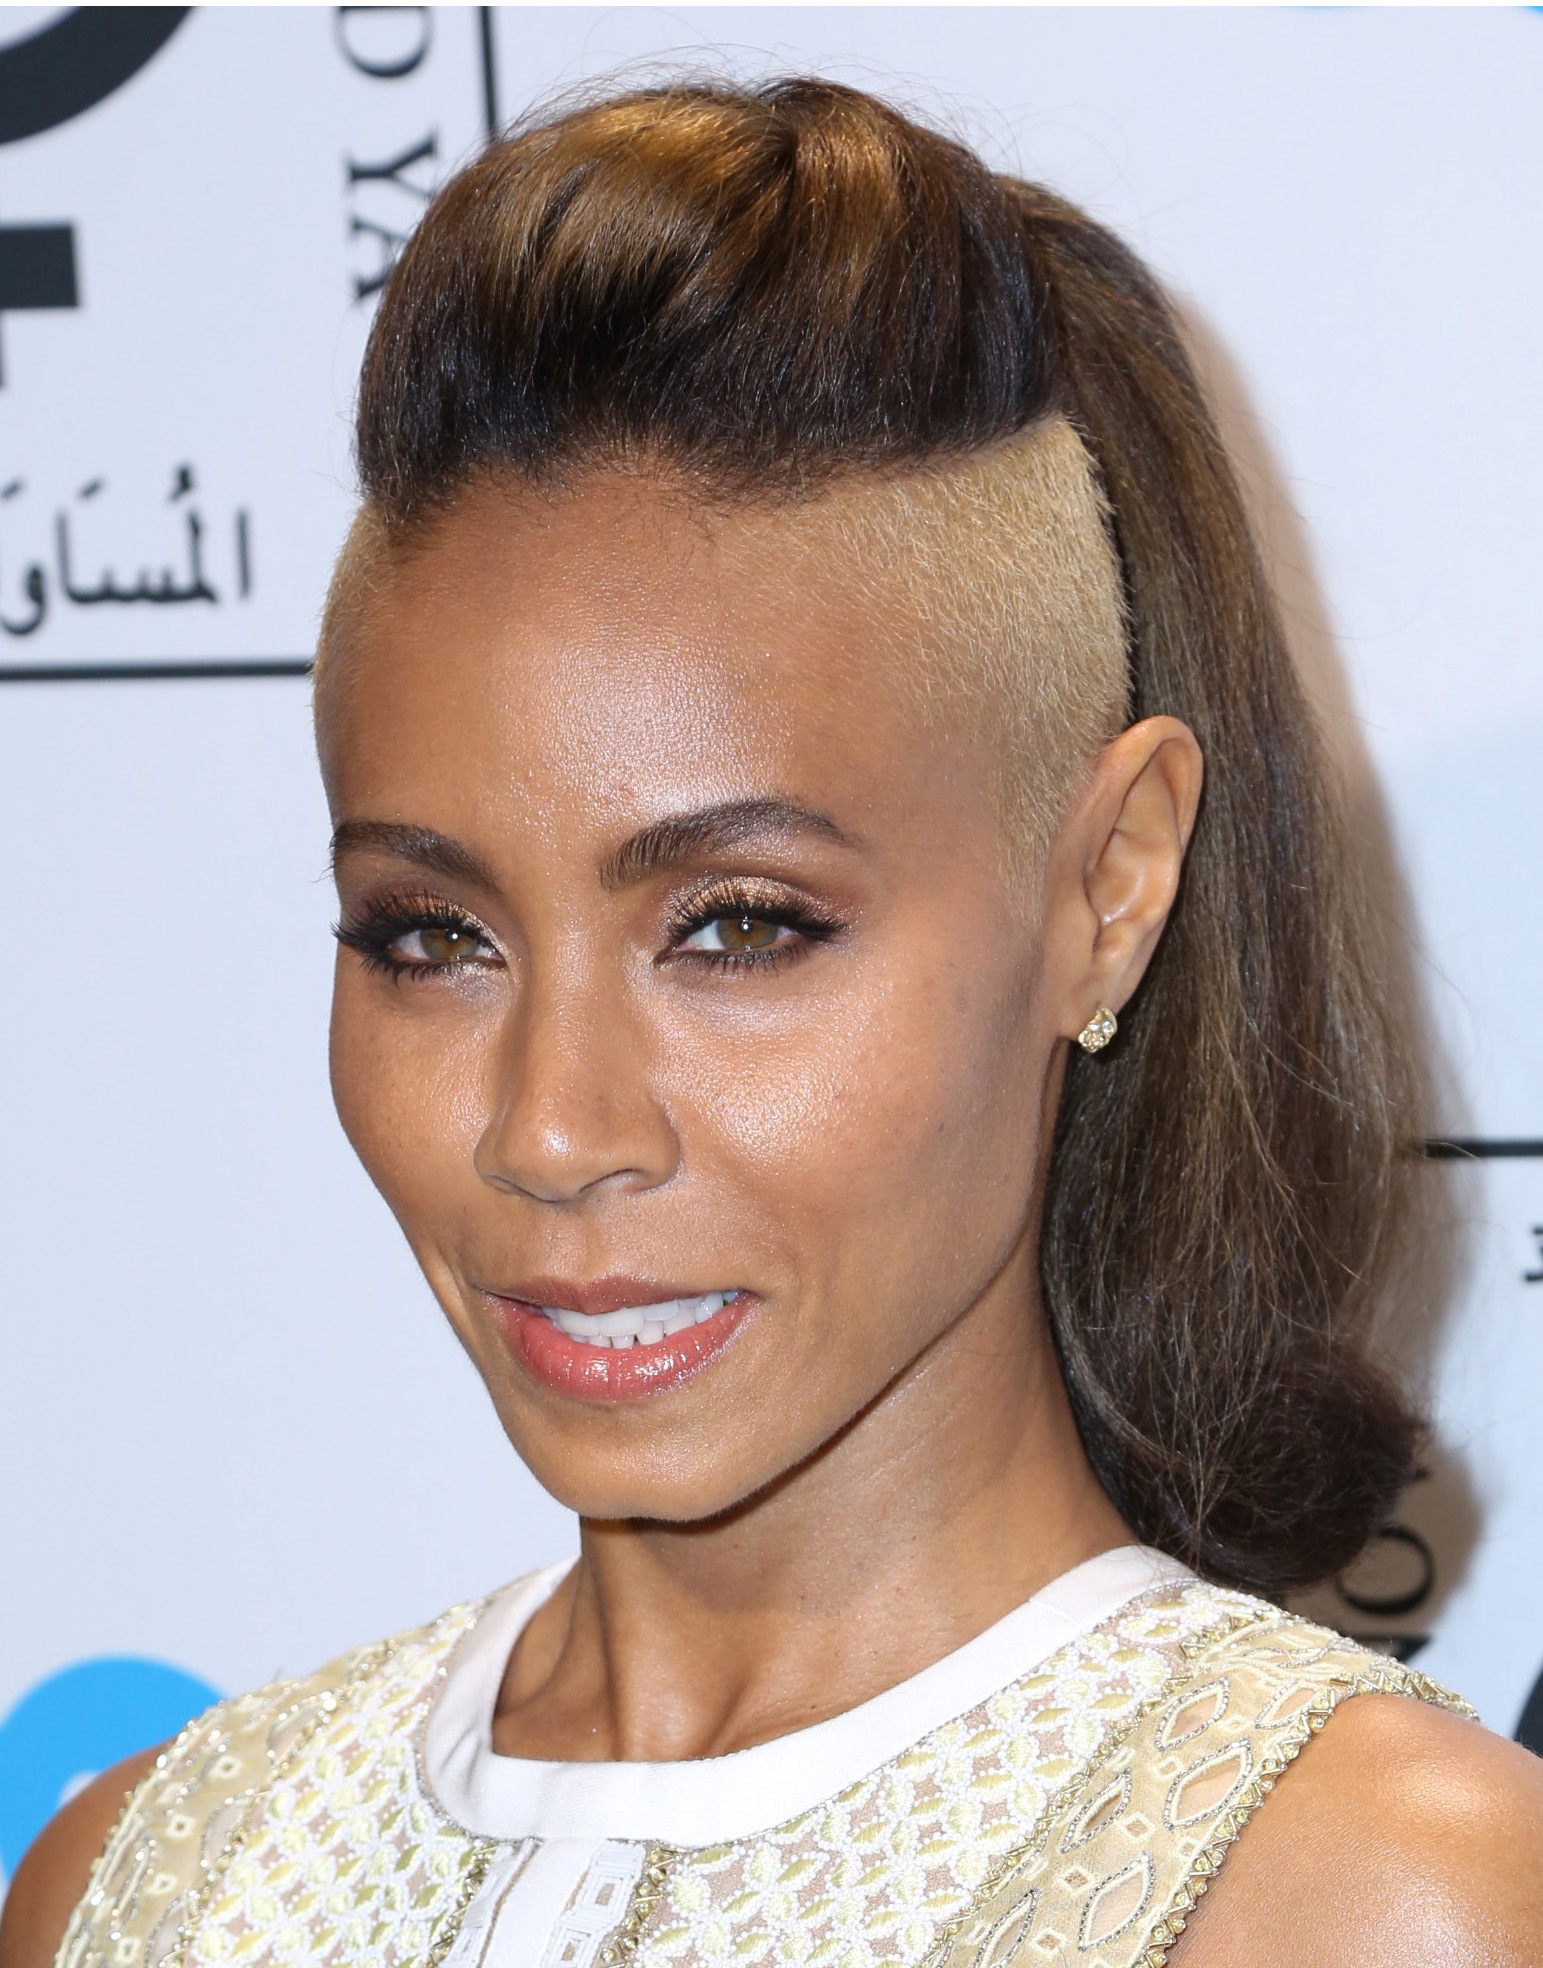 jada pinkett smith edgy new hair shaved sides blond equality